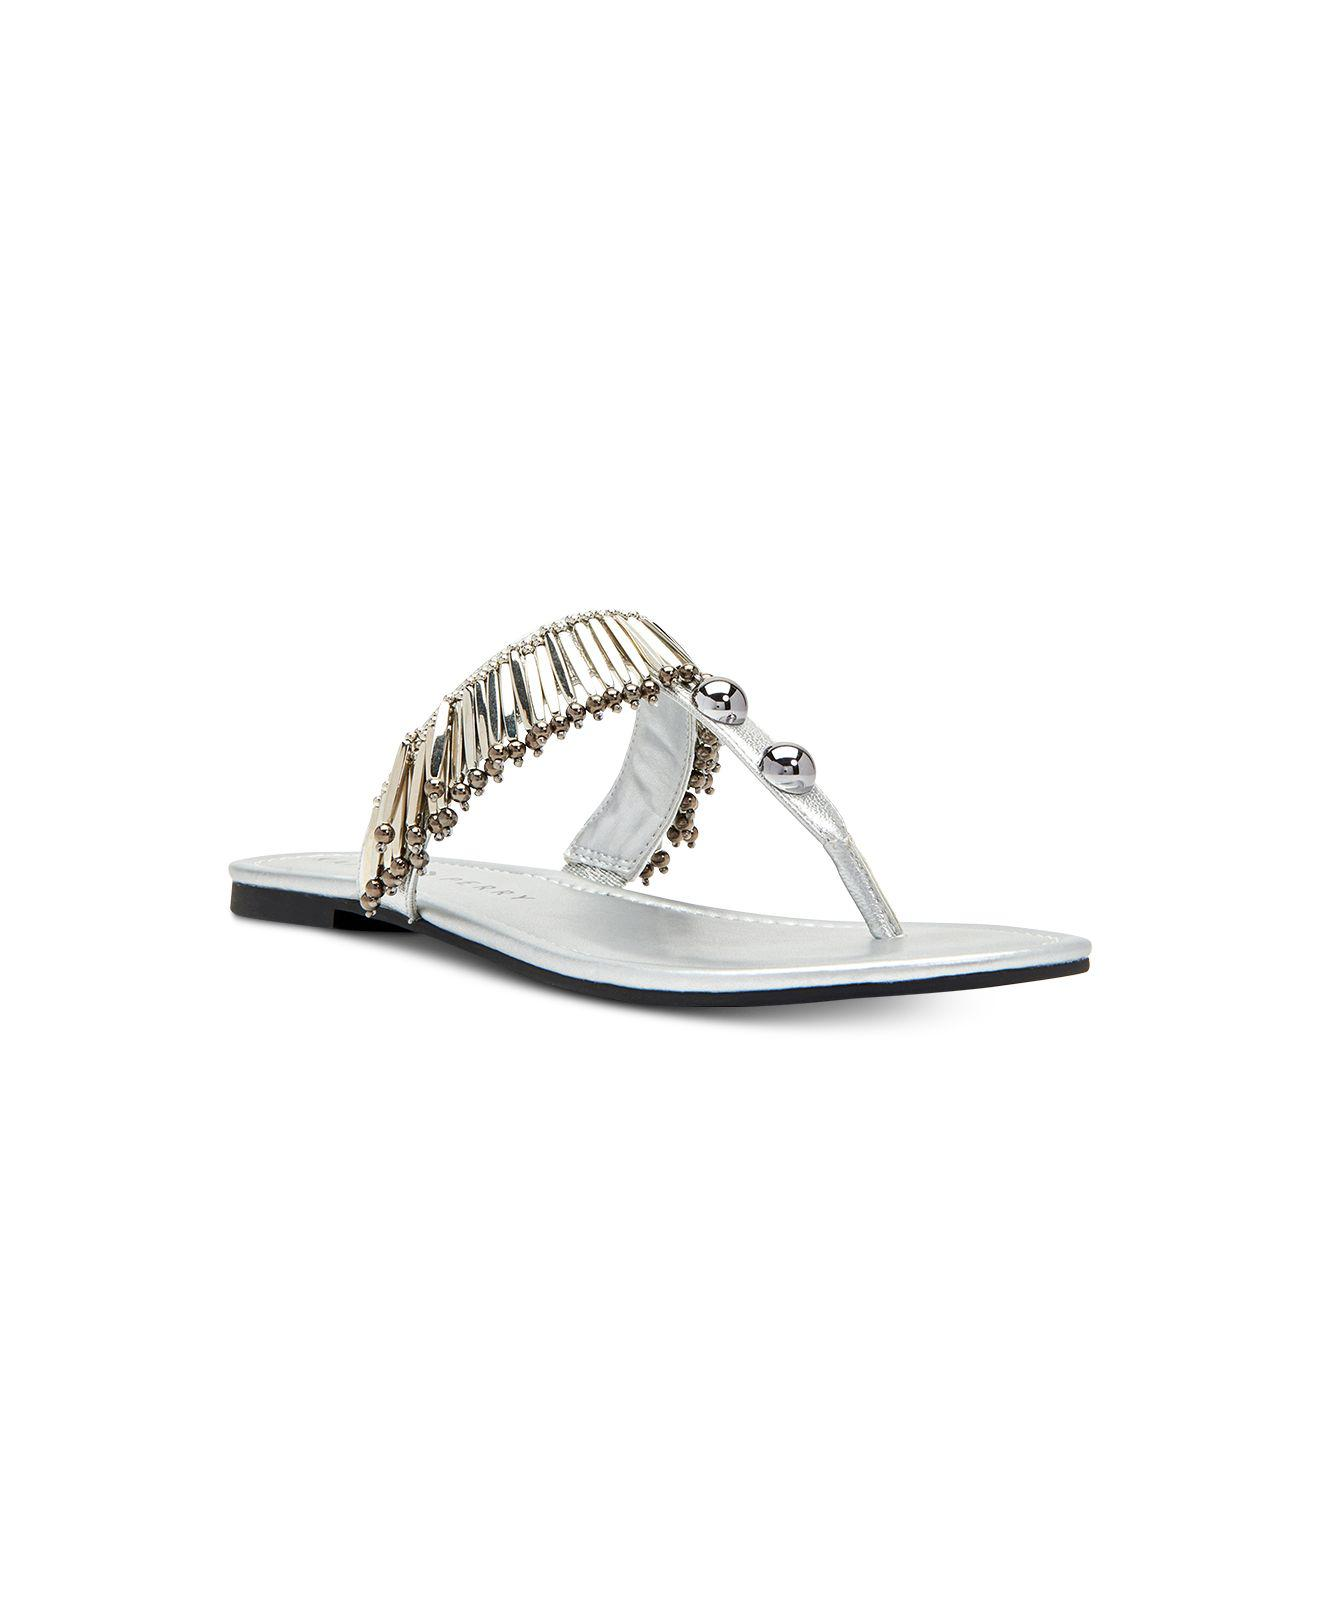 c57731b1ce15 Lyst - Katy Perry The Brenna Sandals in Metallic